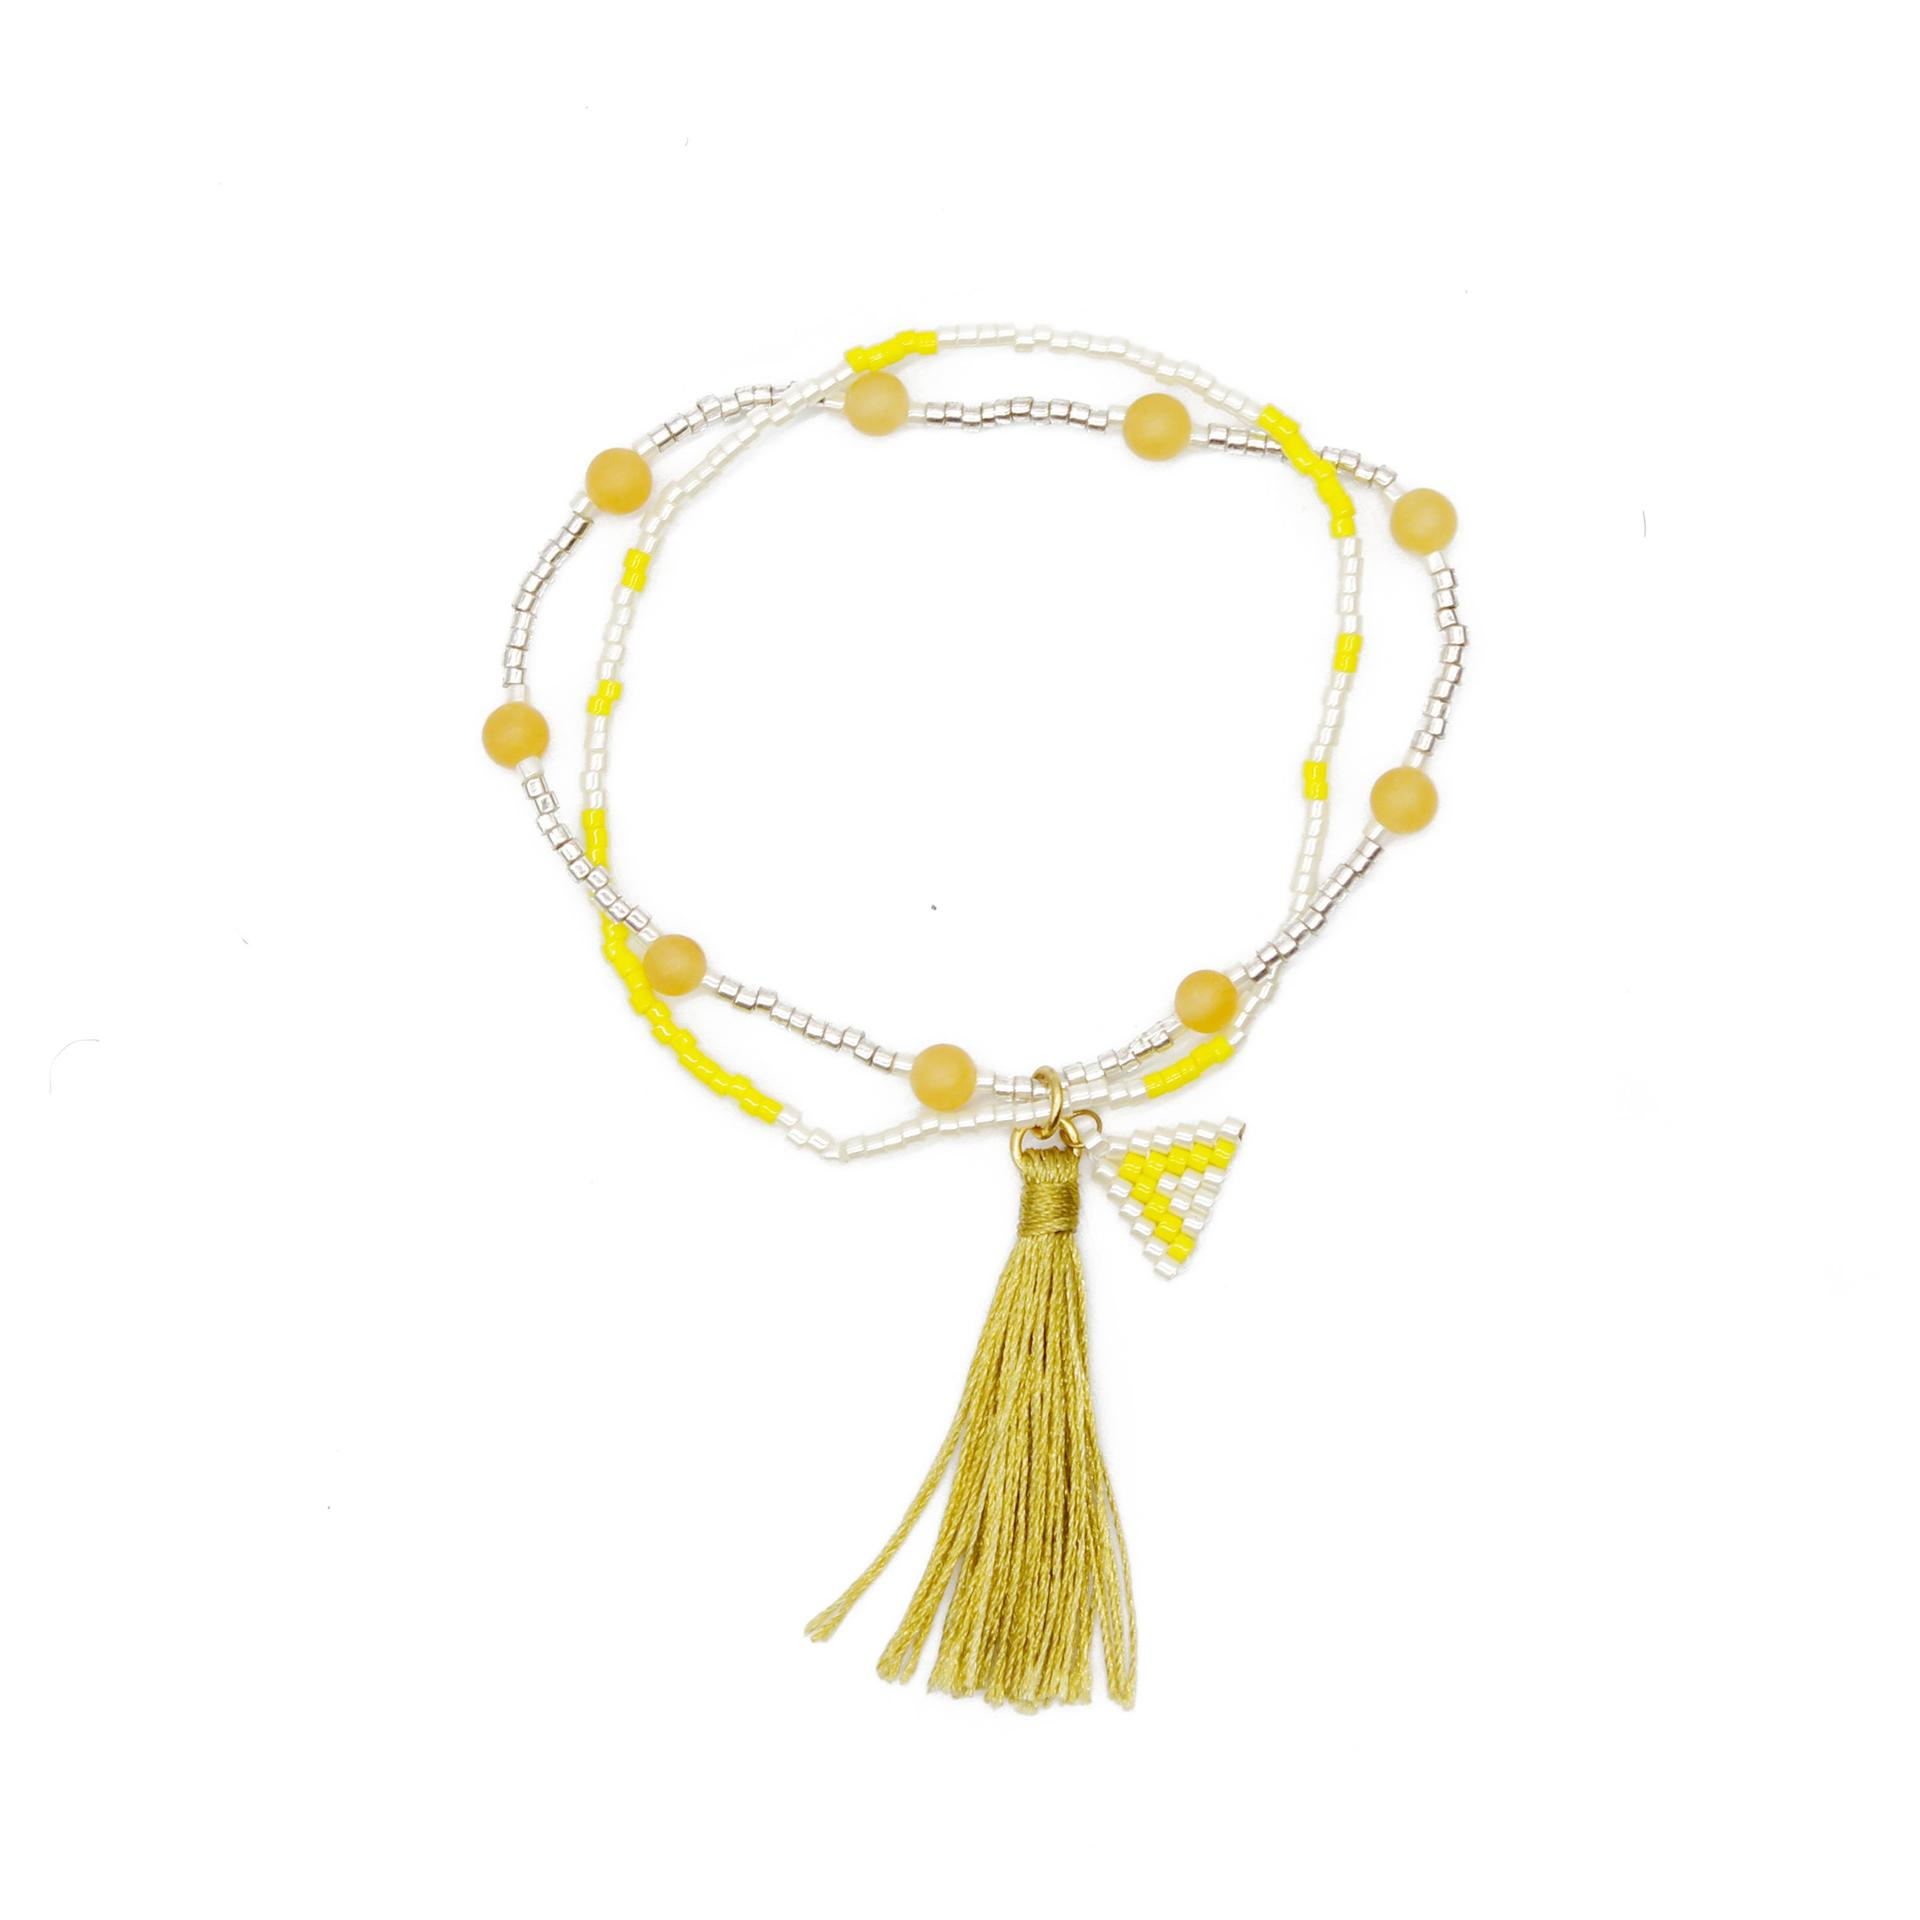 Miyuki and Yellow Jade Beads Simple Handmade Bracelet with Tassel